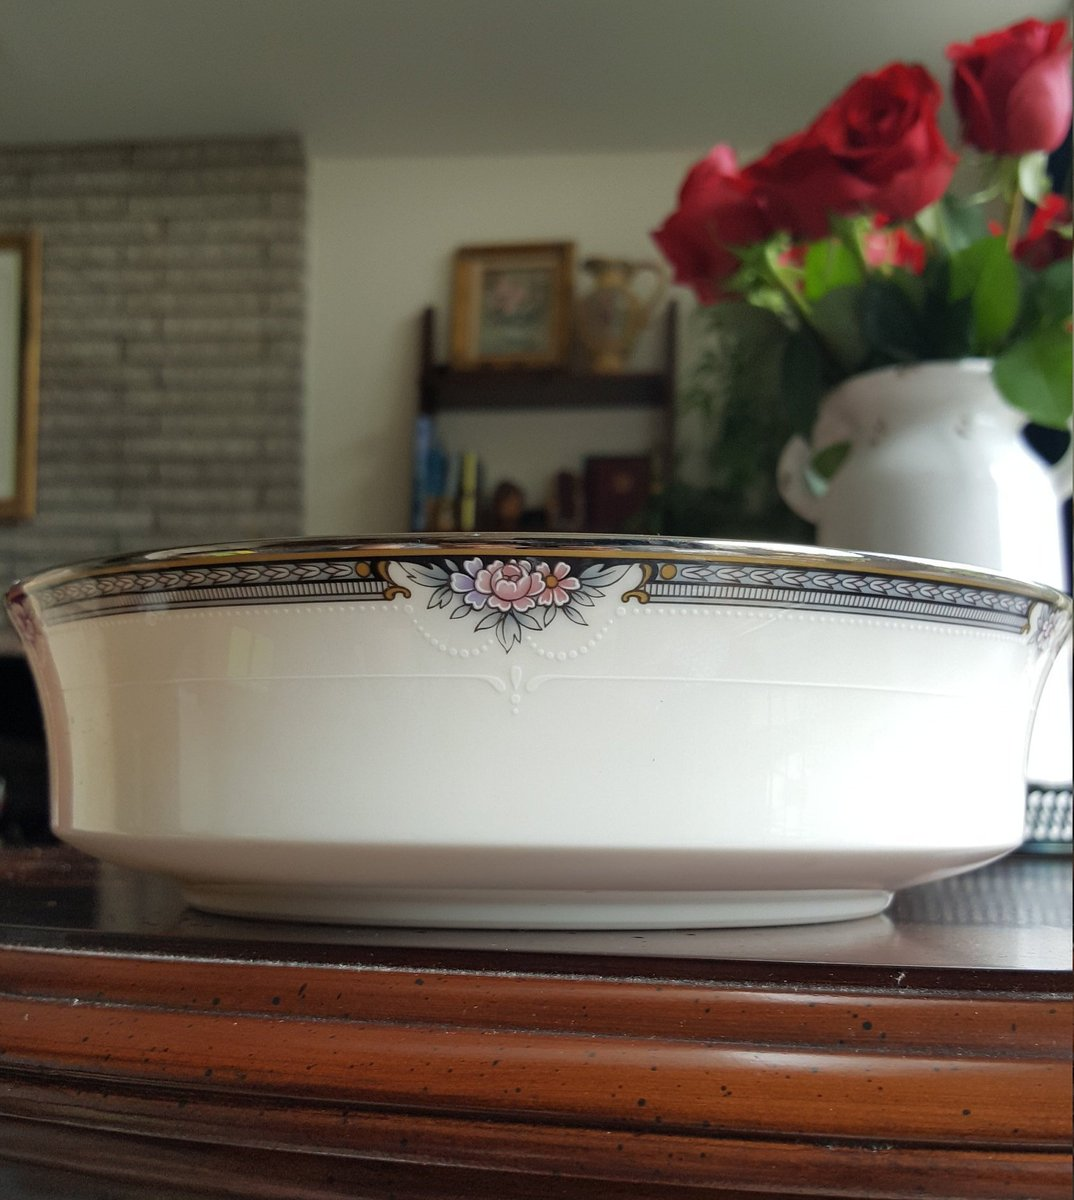 Excited to share the latest addition to my #etsy shop: Noritake Halifax Round Vegetable Bowl Beautiful Pink Flowers and Black Band Replacement China Luxury Dinnerware Wedding Registry China Set https://t.co/NiqDWBmFgn #white #wedding #mothersday #silver #noritakefinech https://t.co/aJACeY3xfV